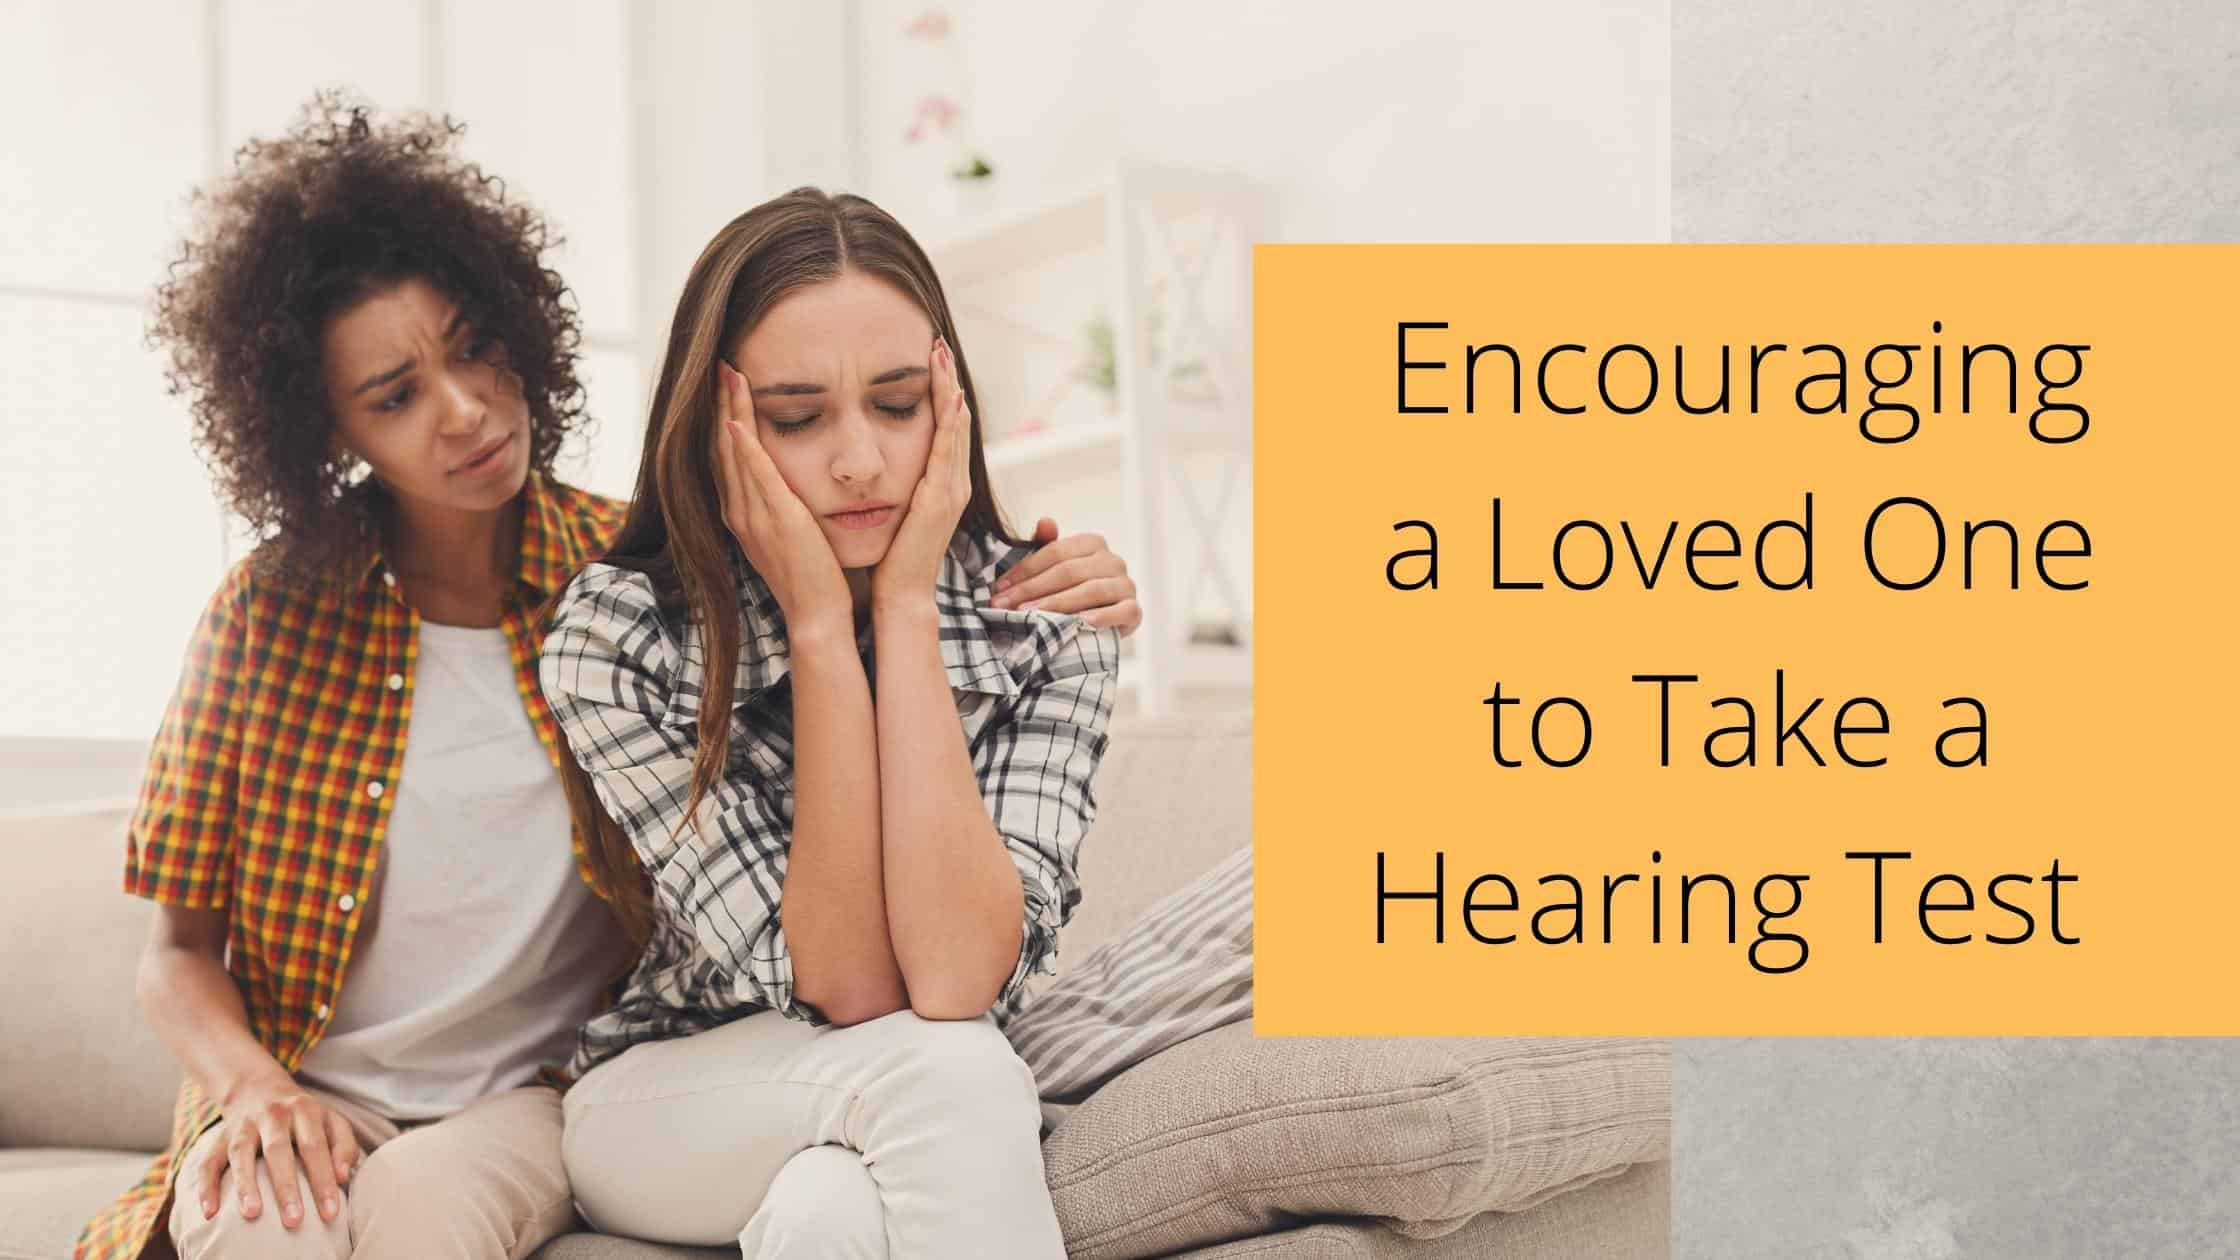 Encouraging a Loved One to Take a Hearing Test